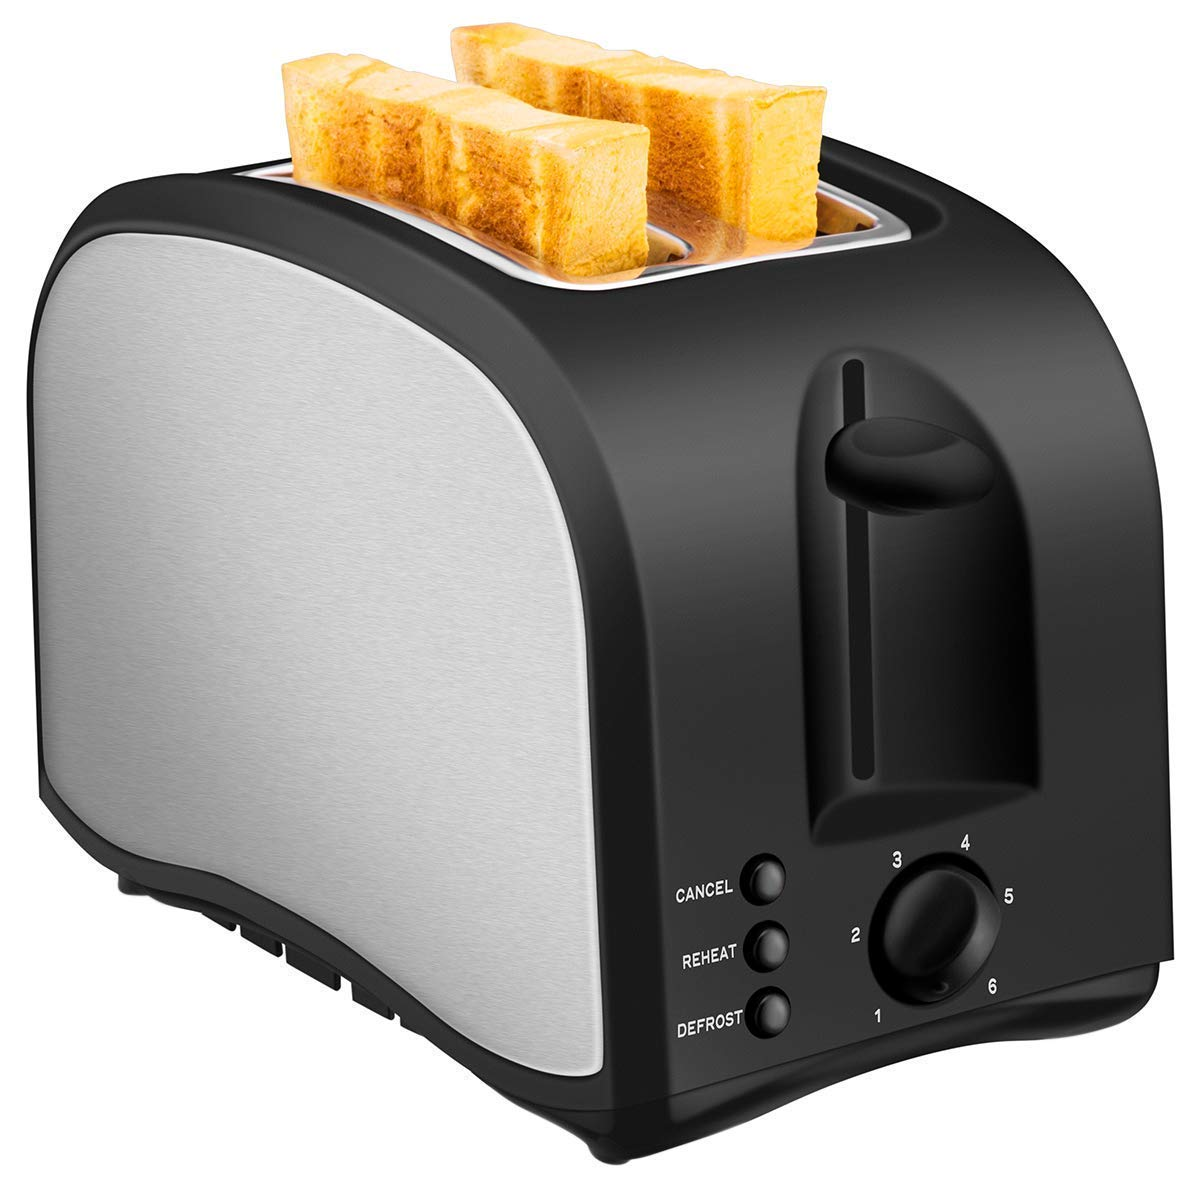 2 Slice Toaster, Chitomax Toasters with 2 Extra-Wide Slots, 2 Slot Toasters, Top Rated Best Prime, Stainless Steel with Pop Up Reheat Defrost Functions, 6-Shade Control, Removable Crumb Tray